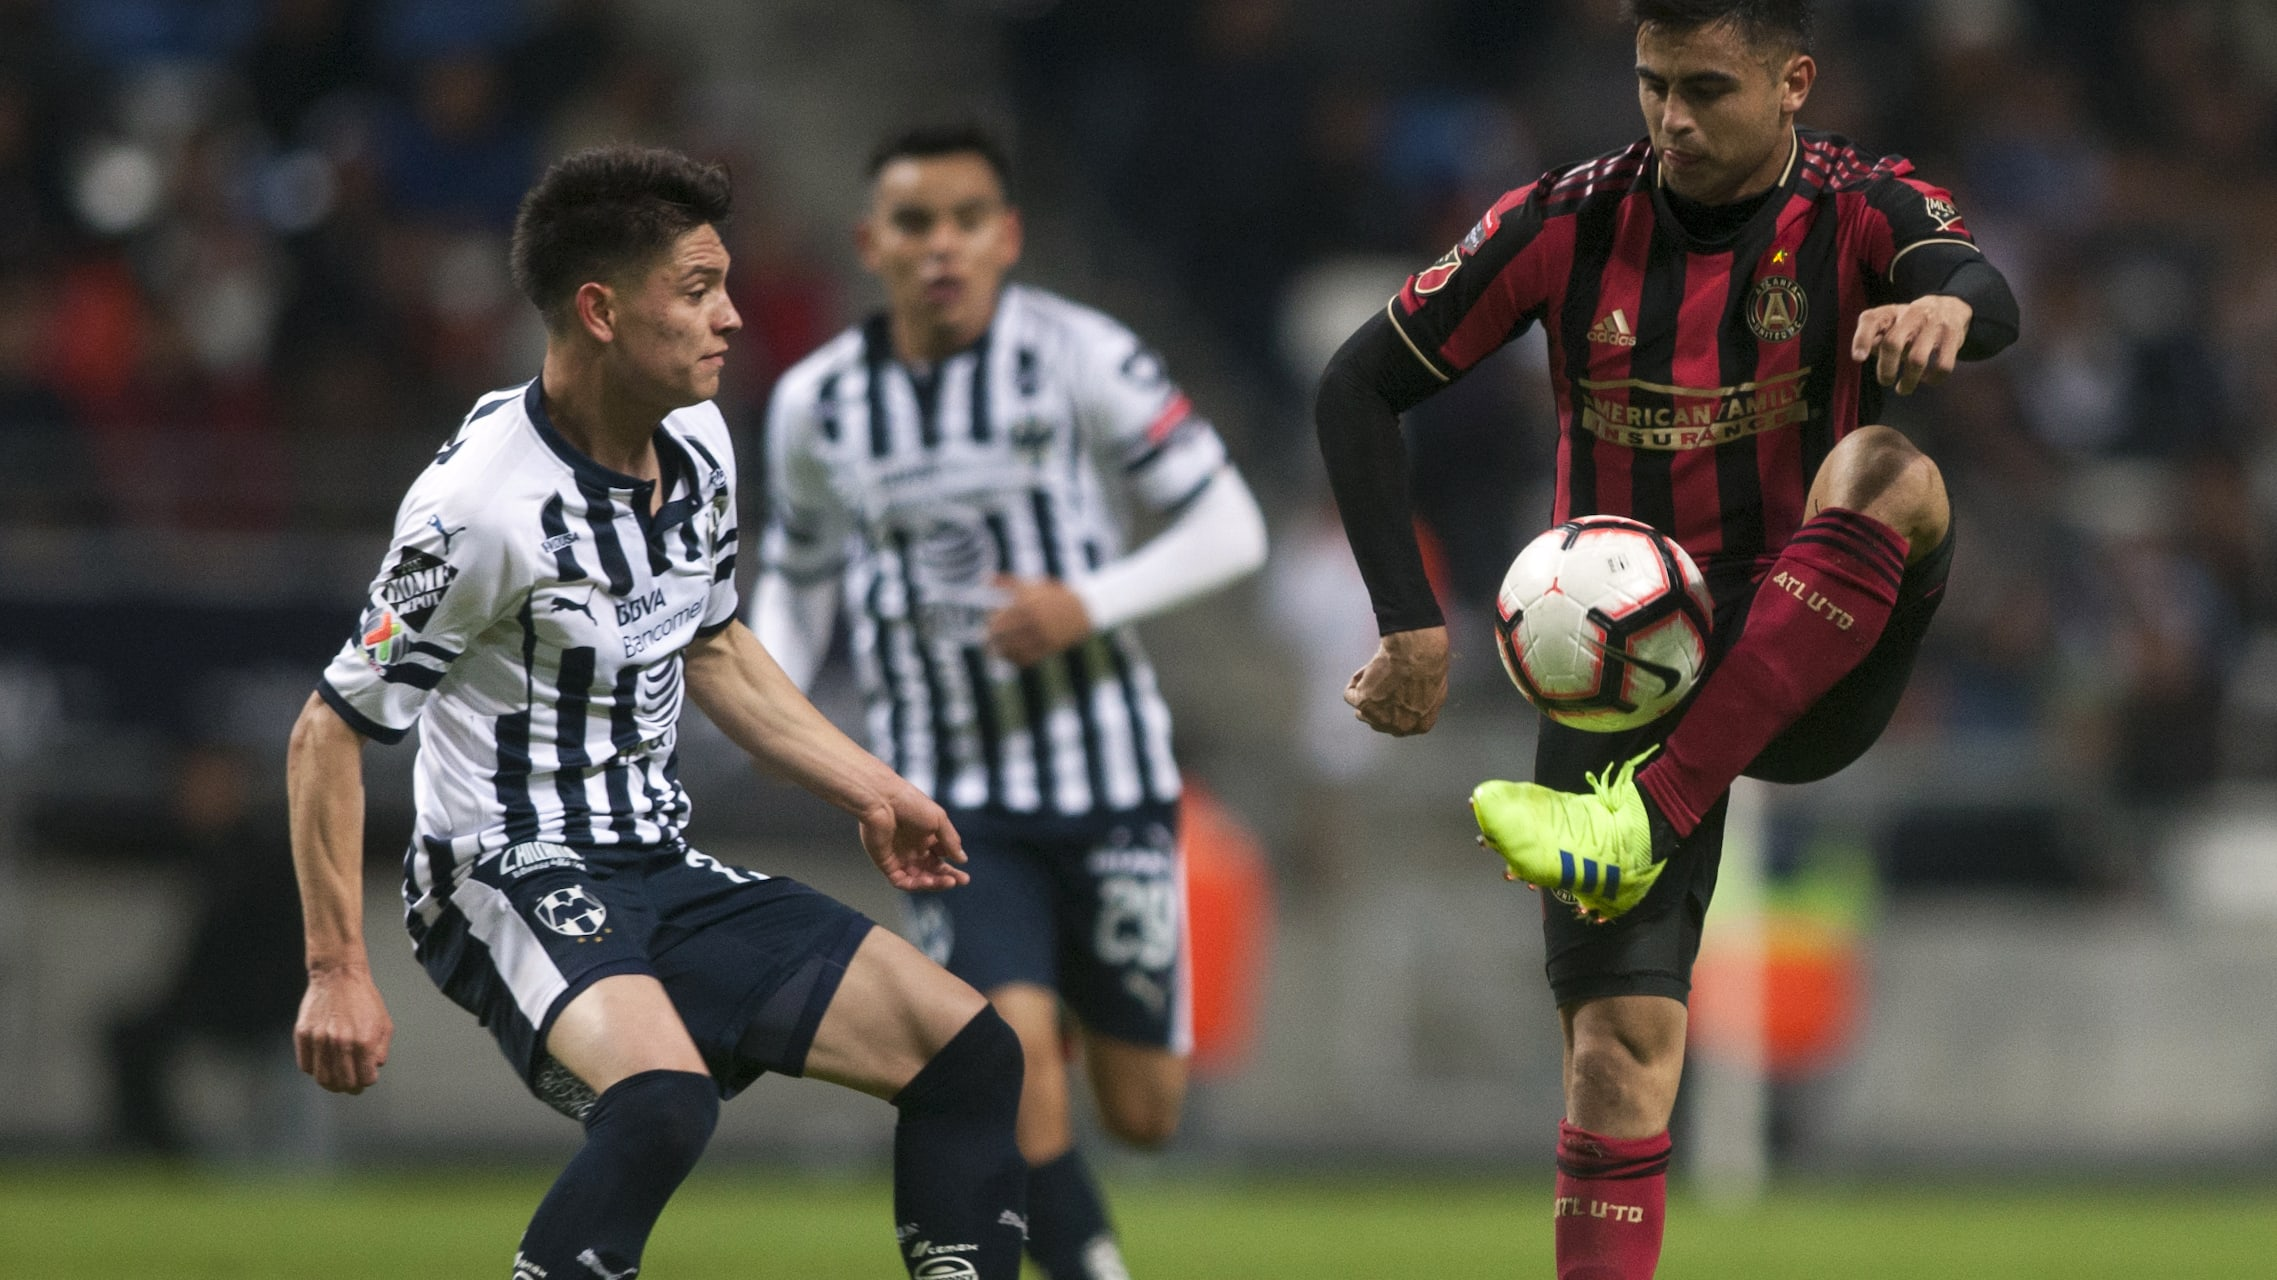 Jonathan Gonzalez (L) of Mexico's Monterrey vies for the ball with Gonzalo Martinez of US United Atlanta FC during the first leg quarterfinal football match of the CONCACAF Champions League at the BBVA Bancomer stadium in Monterrey, Mexico, on March 6, 2019. (Photo by Julio Cesar AGUILAR / AFP)        (Photo credit should read JULIO CESAR AGUILAR/AFP/Getty Images)